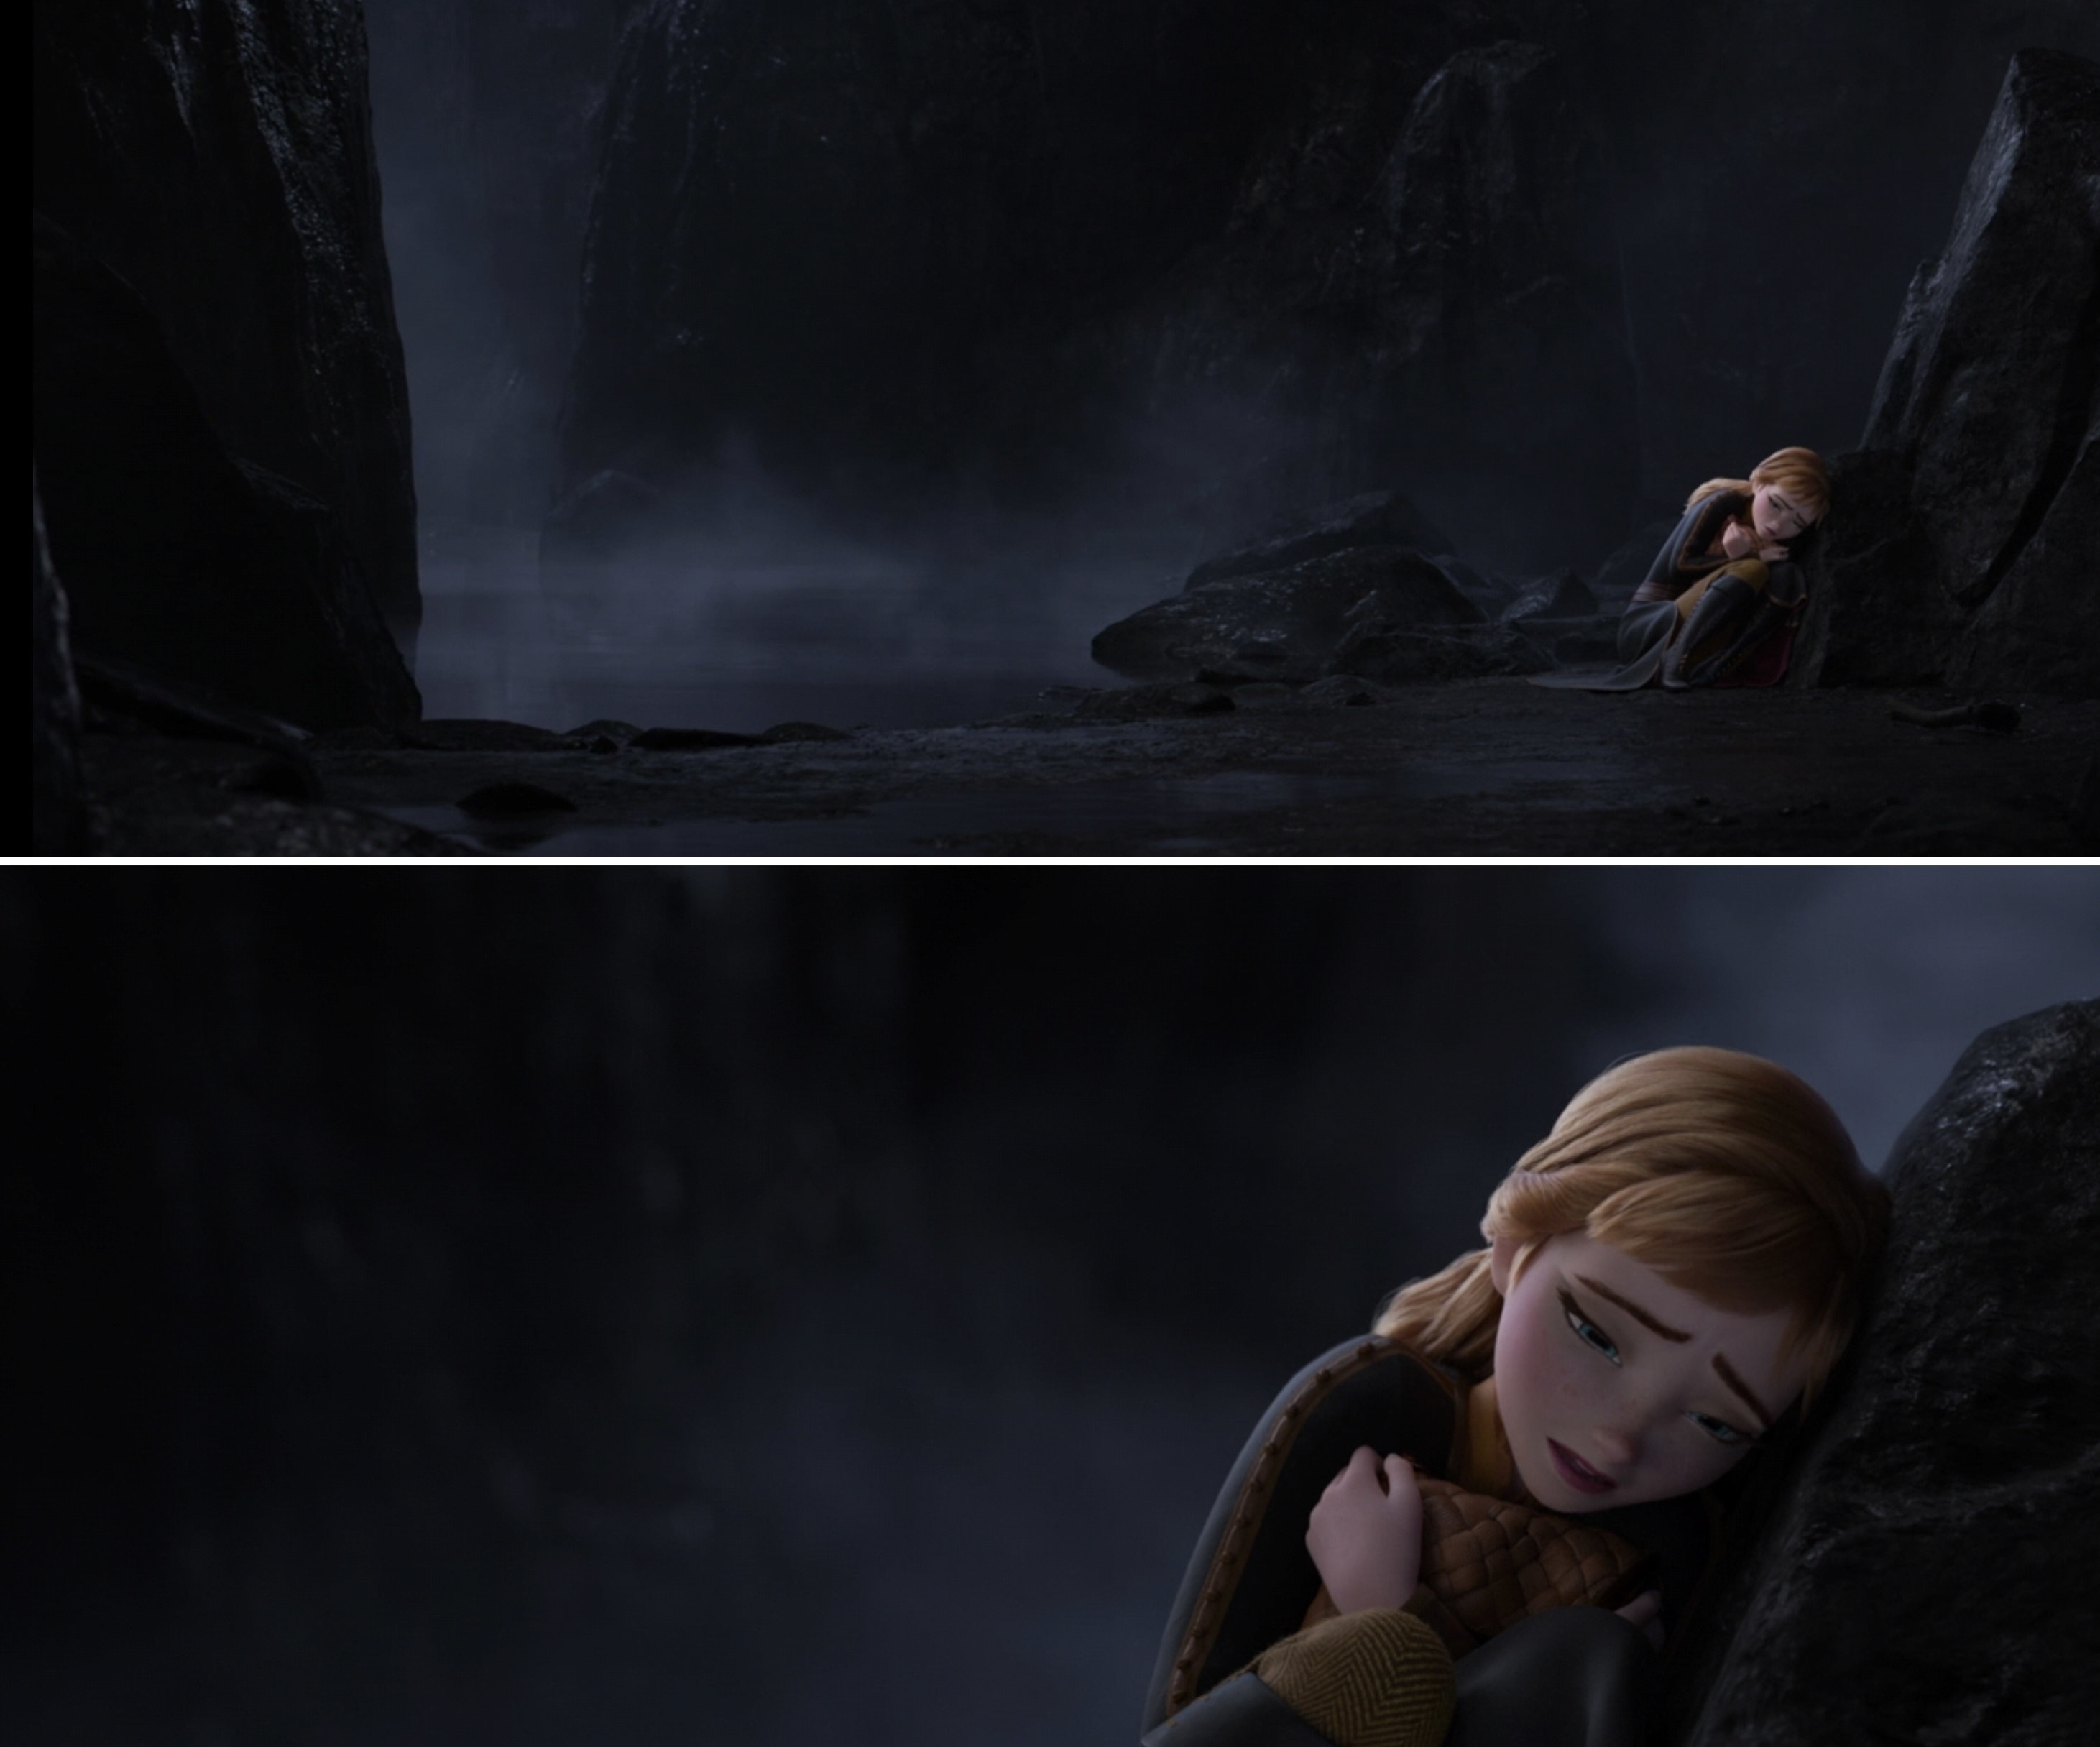 Anna leaning against a rock in the dark in Frozen 2